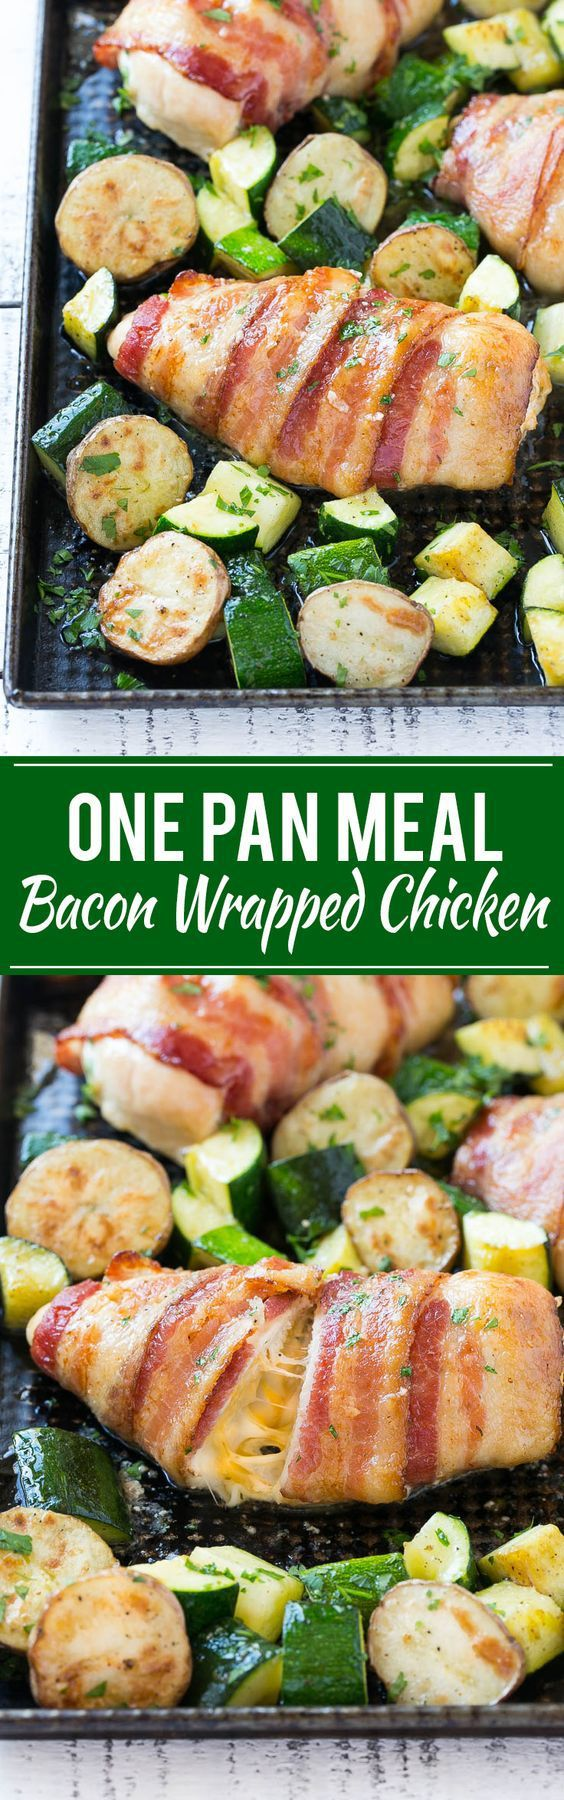 One Sheet Pan Bacon Wrapped Stuffed Chicken with Veggies Recipe via Dinner at the Zoo - This recipe for bacon wrapped stuffed chicken breast with roasted potatoes and zucchini is a quick and easy one pan meal that's sure to please any crowd! The chicken is stuffed with a an incredible combination of three cheeses, garlic and herbs.